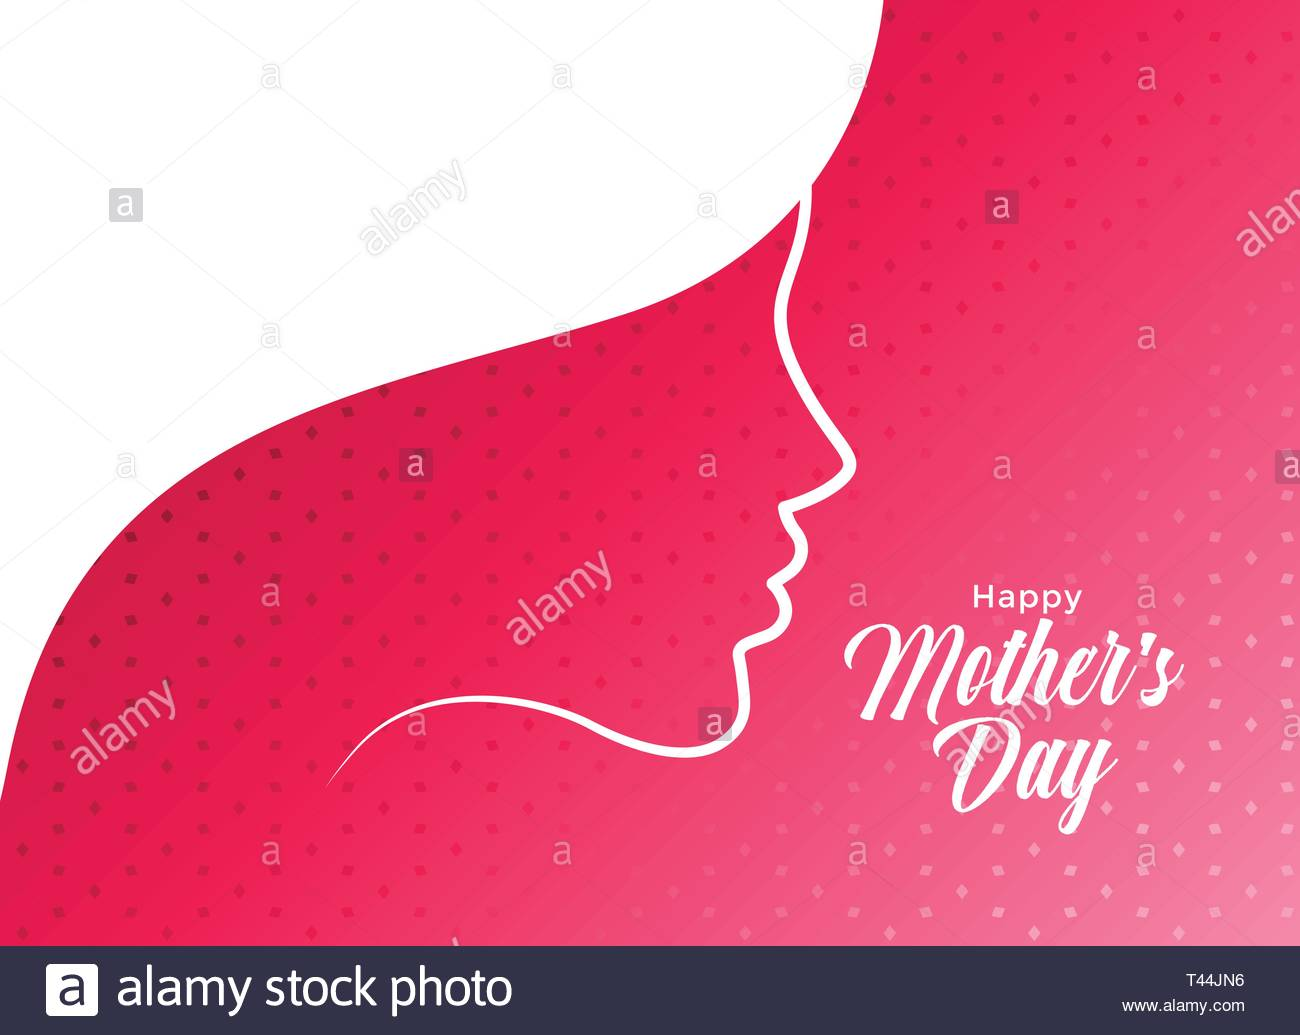 Poster Red Mothers Day Poster Stock Photos Mothers Day Poster Stock Images